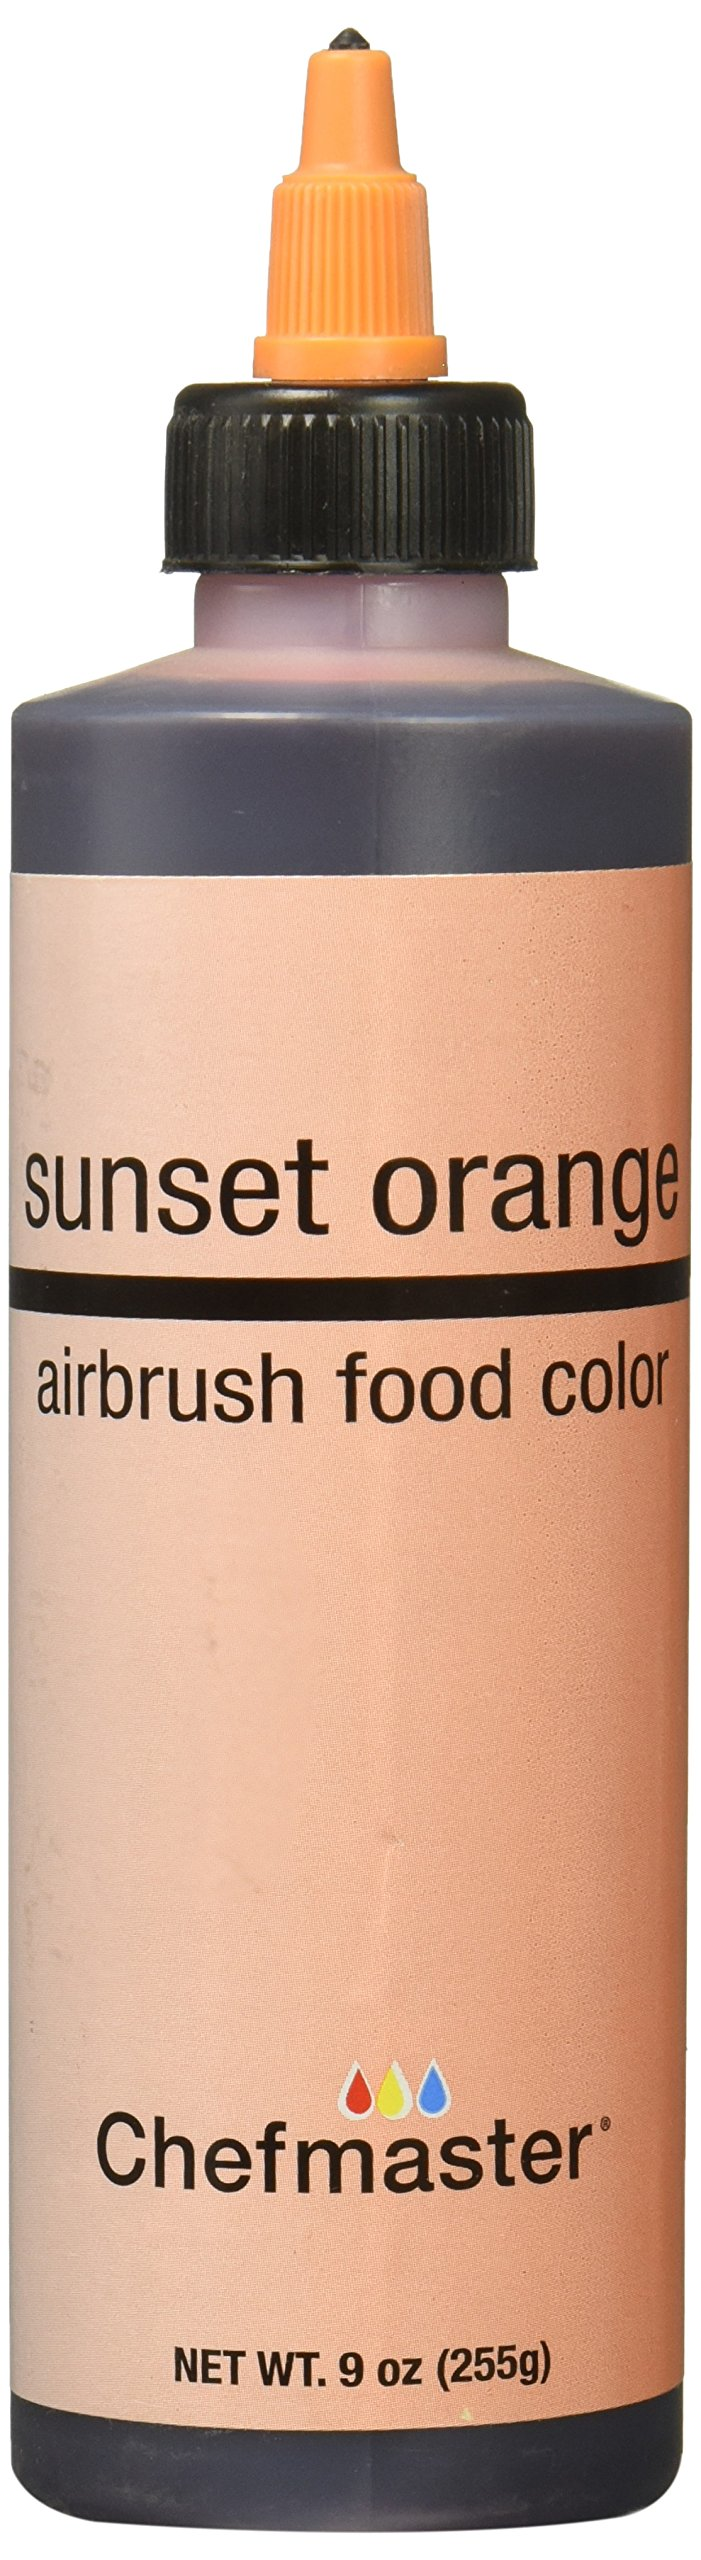 Chefmaster Airbrush Spray Food Color, 9-Ounce, Orange